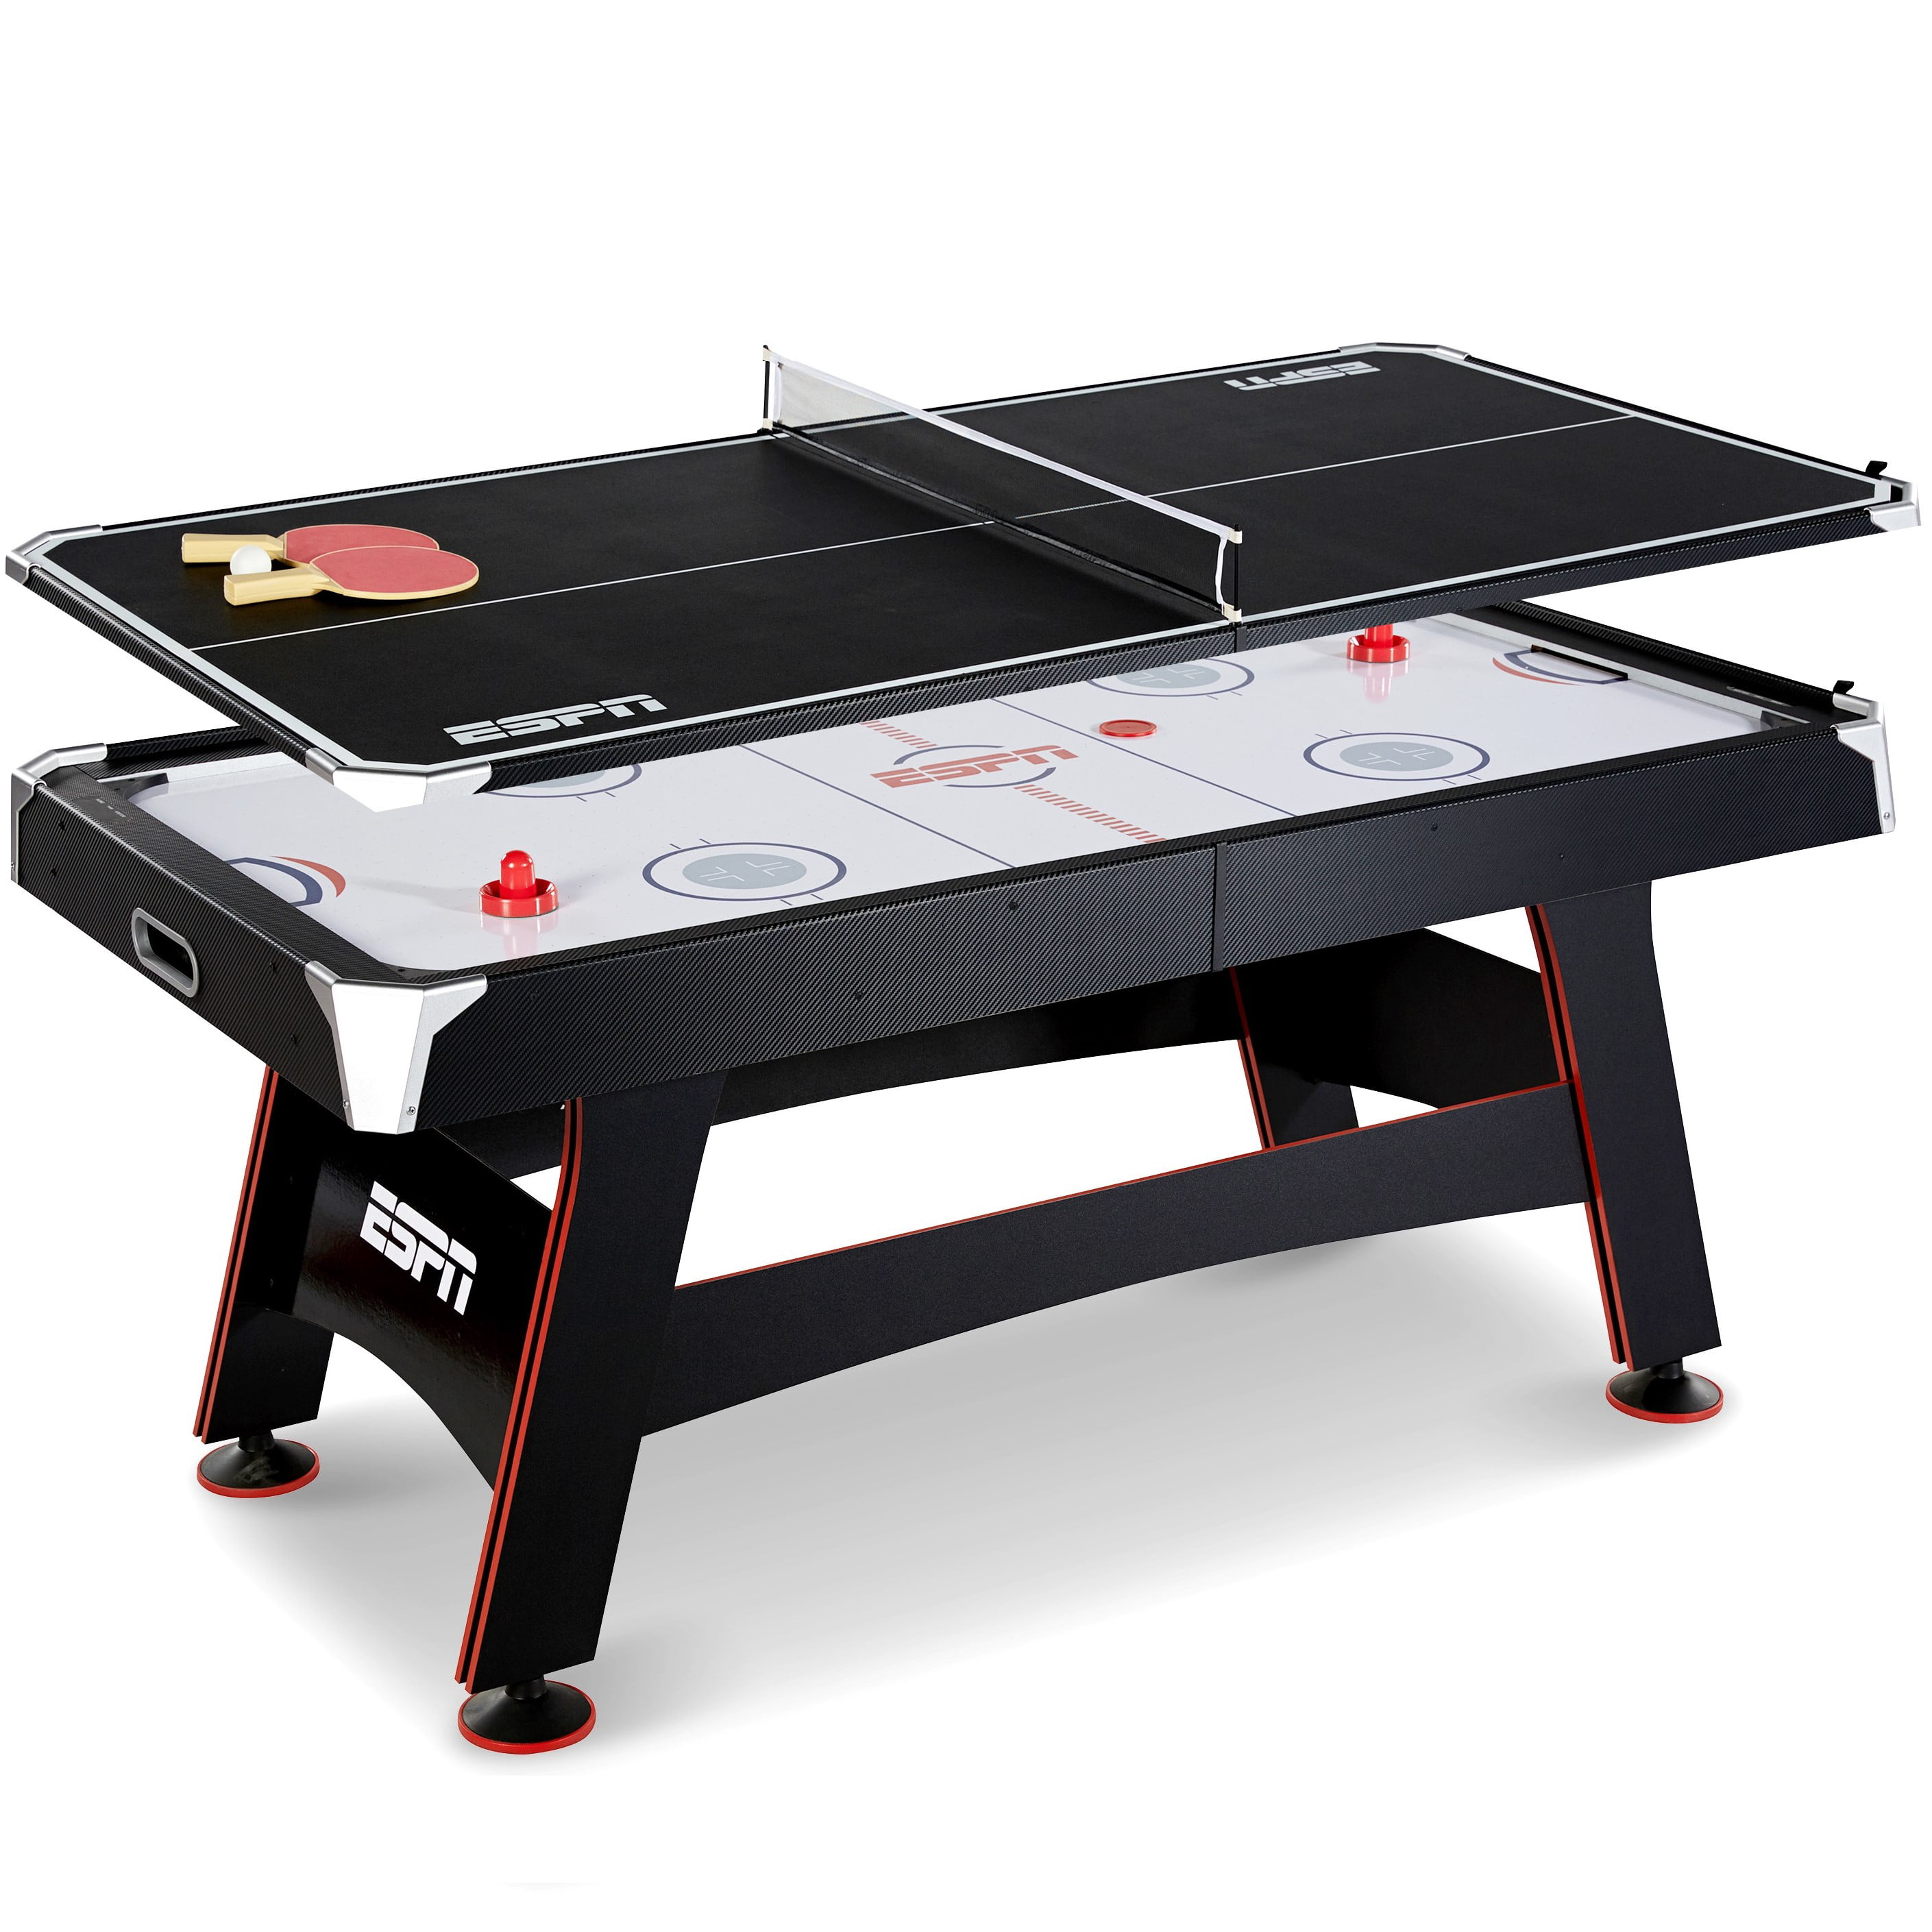 ESPN 72 Inch Air Powered Hockey Table with Table Tennis Top & In